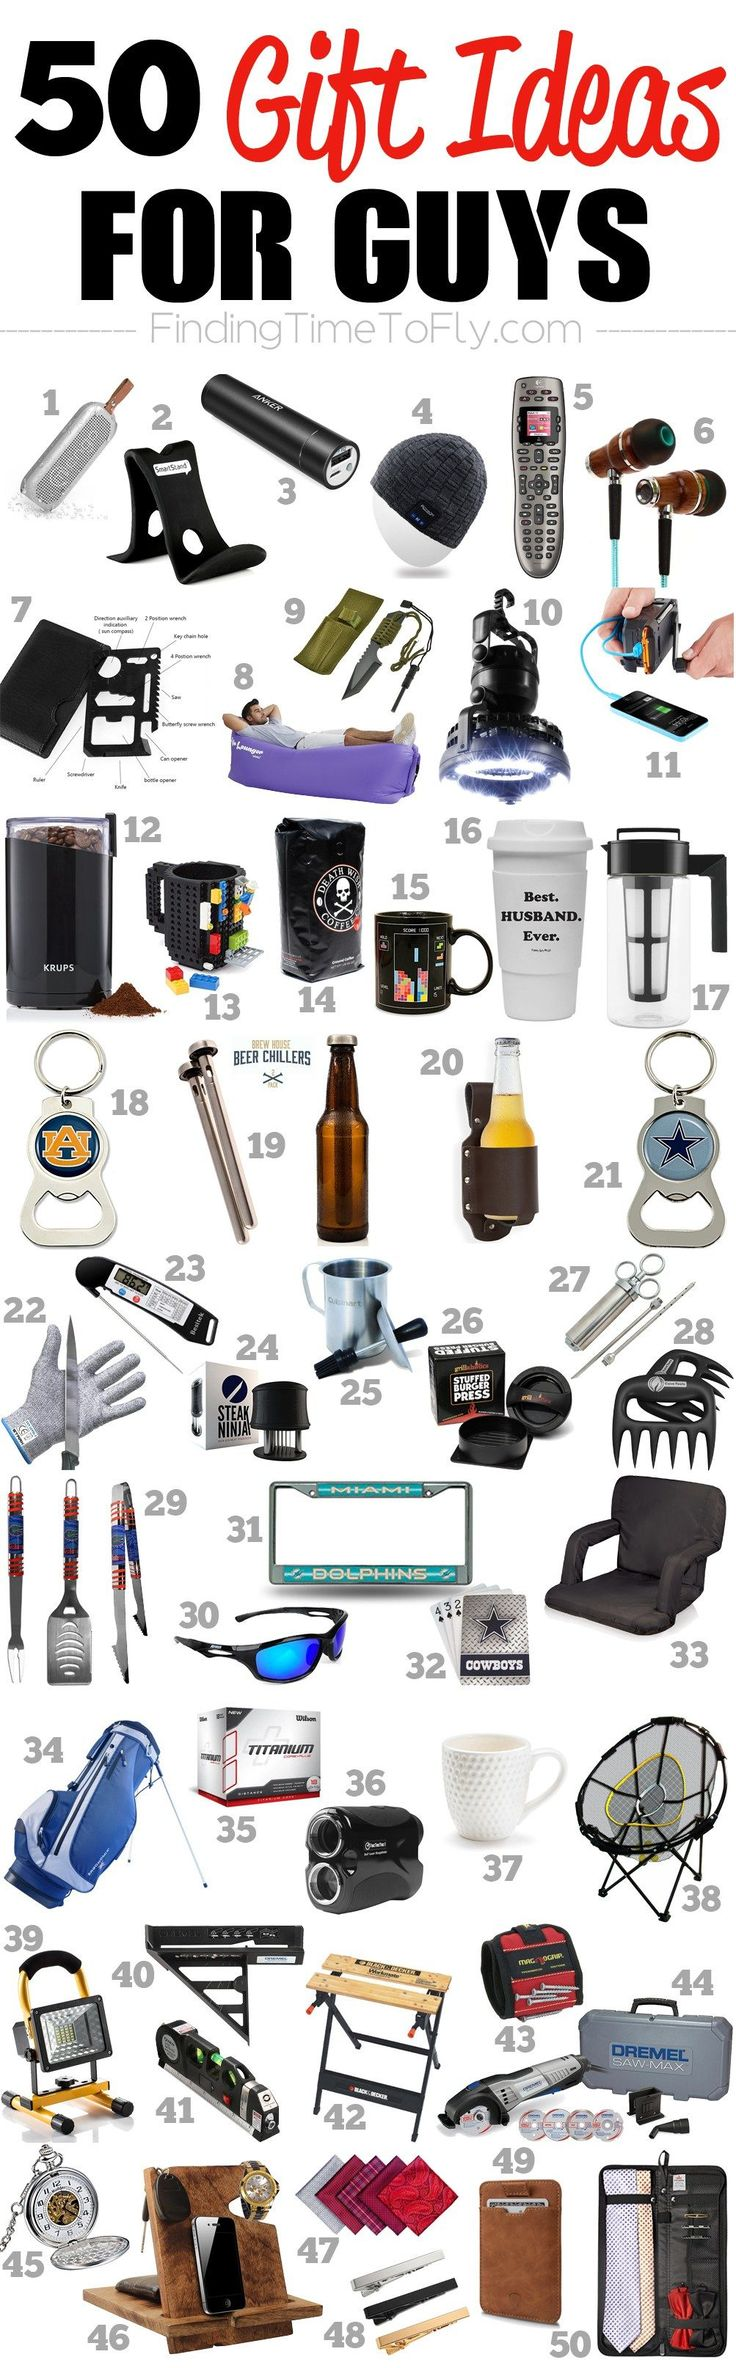 Best 25+ Men gifts ideas only on Pinterest | Fun presents for ...